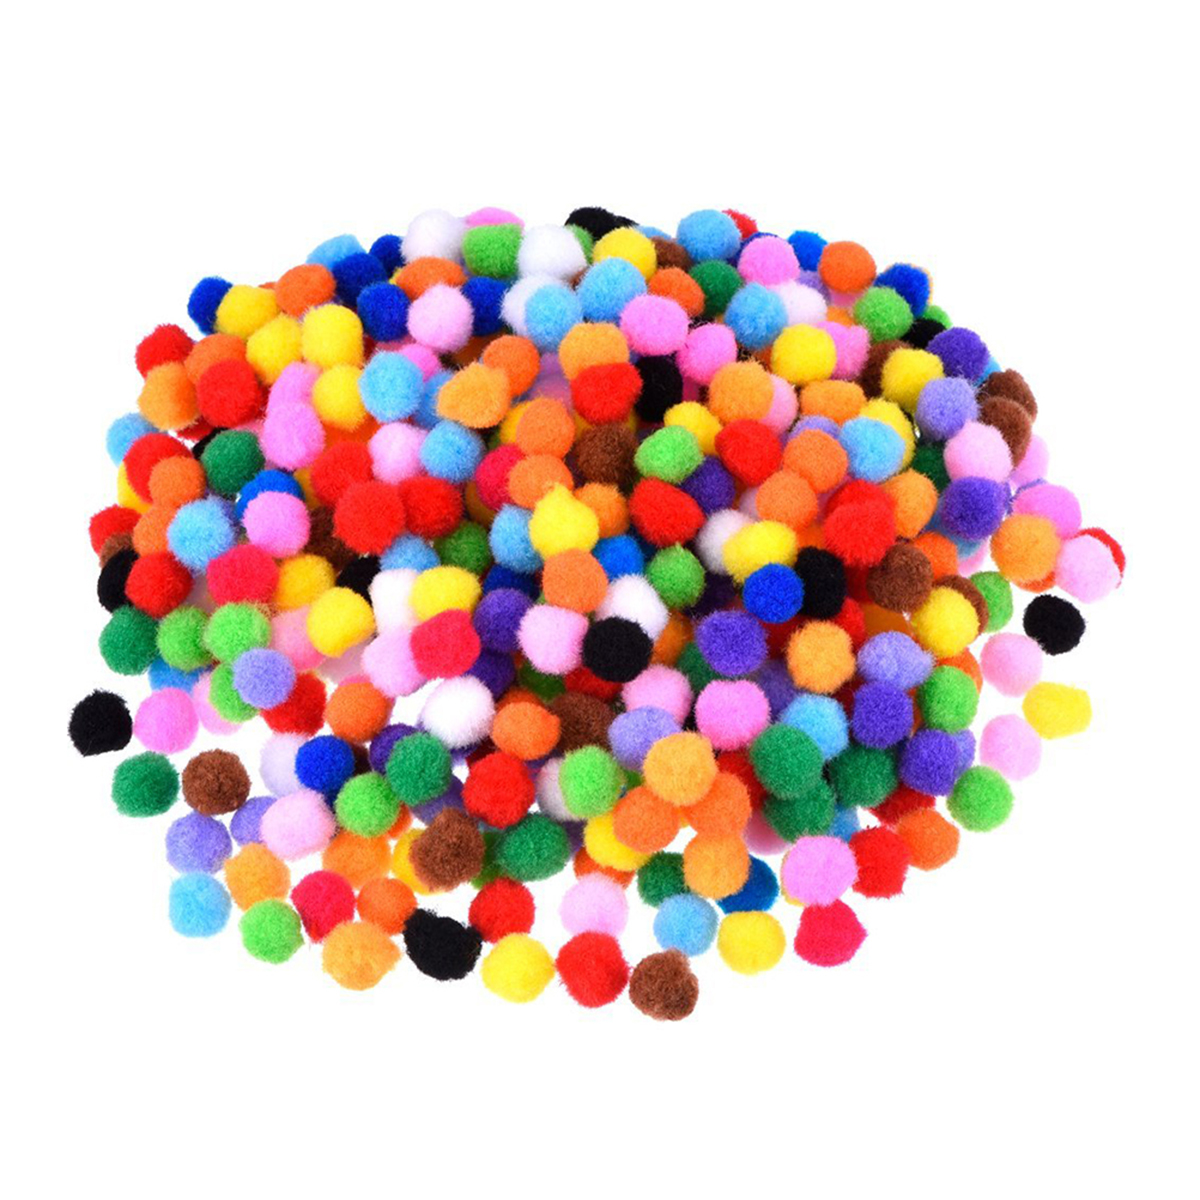 10cm Assorted Pom Poms for DIY Creative Crafts Decorations (Mixed Color), 1200pcs Pack